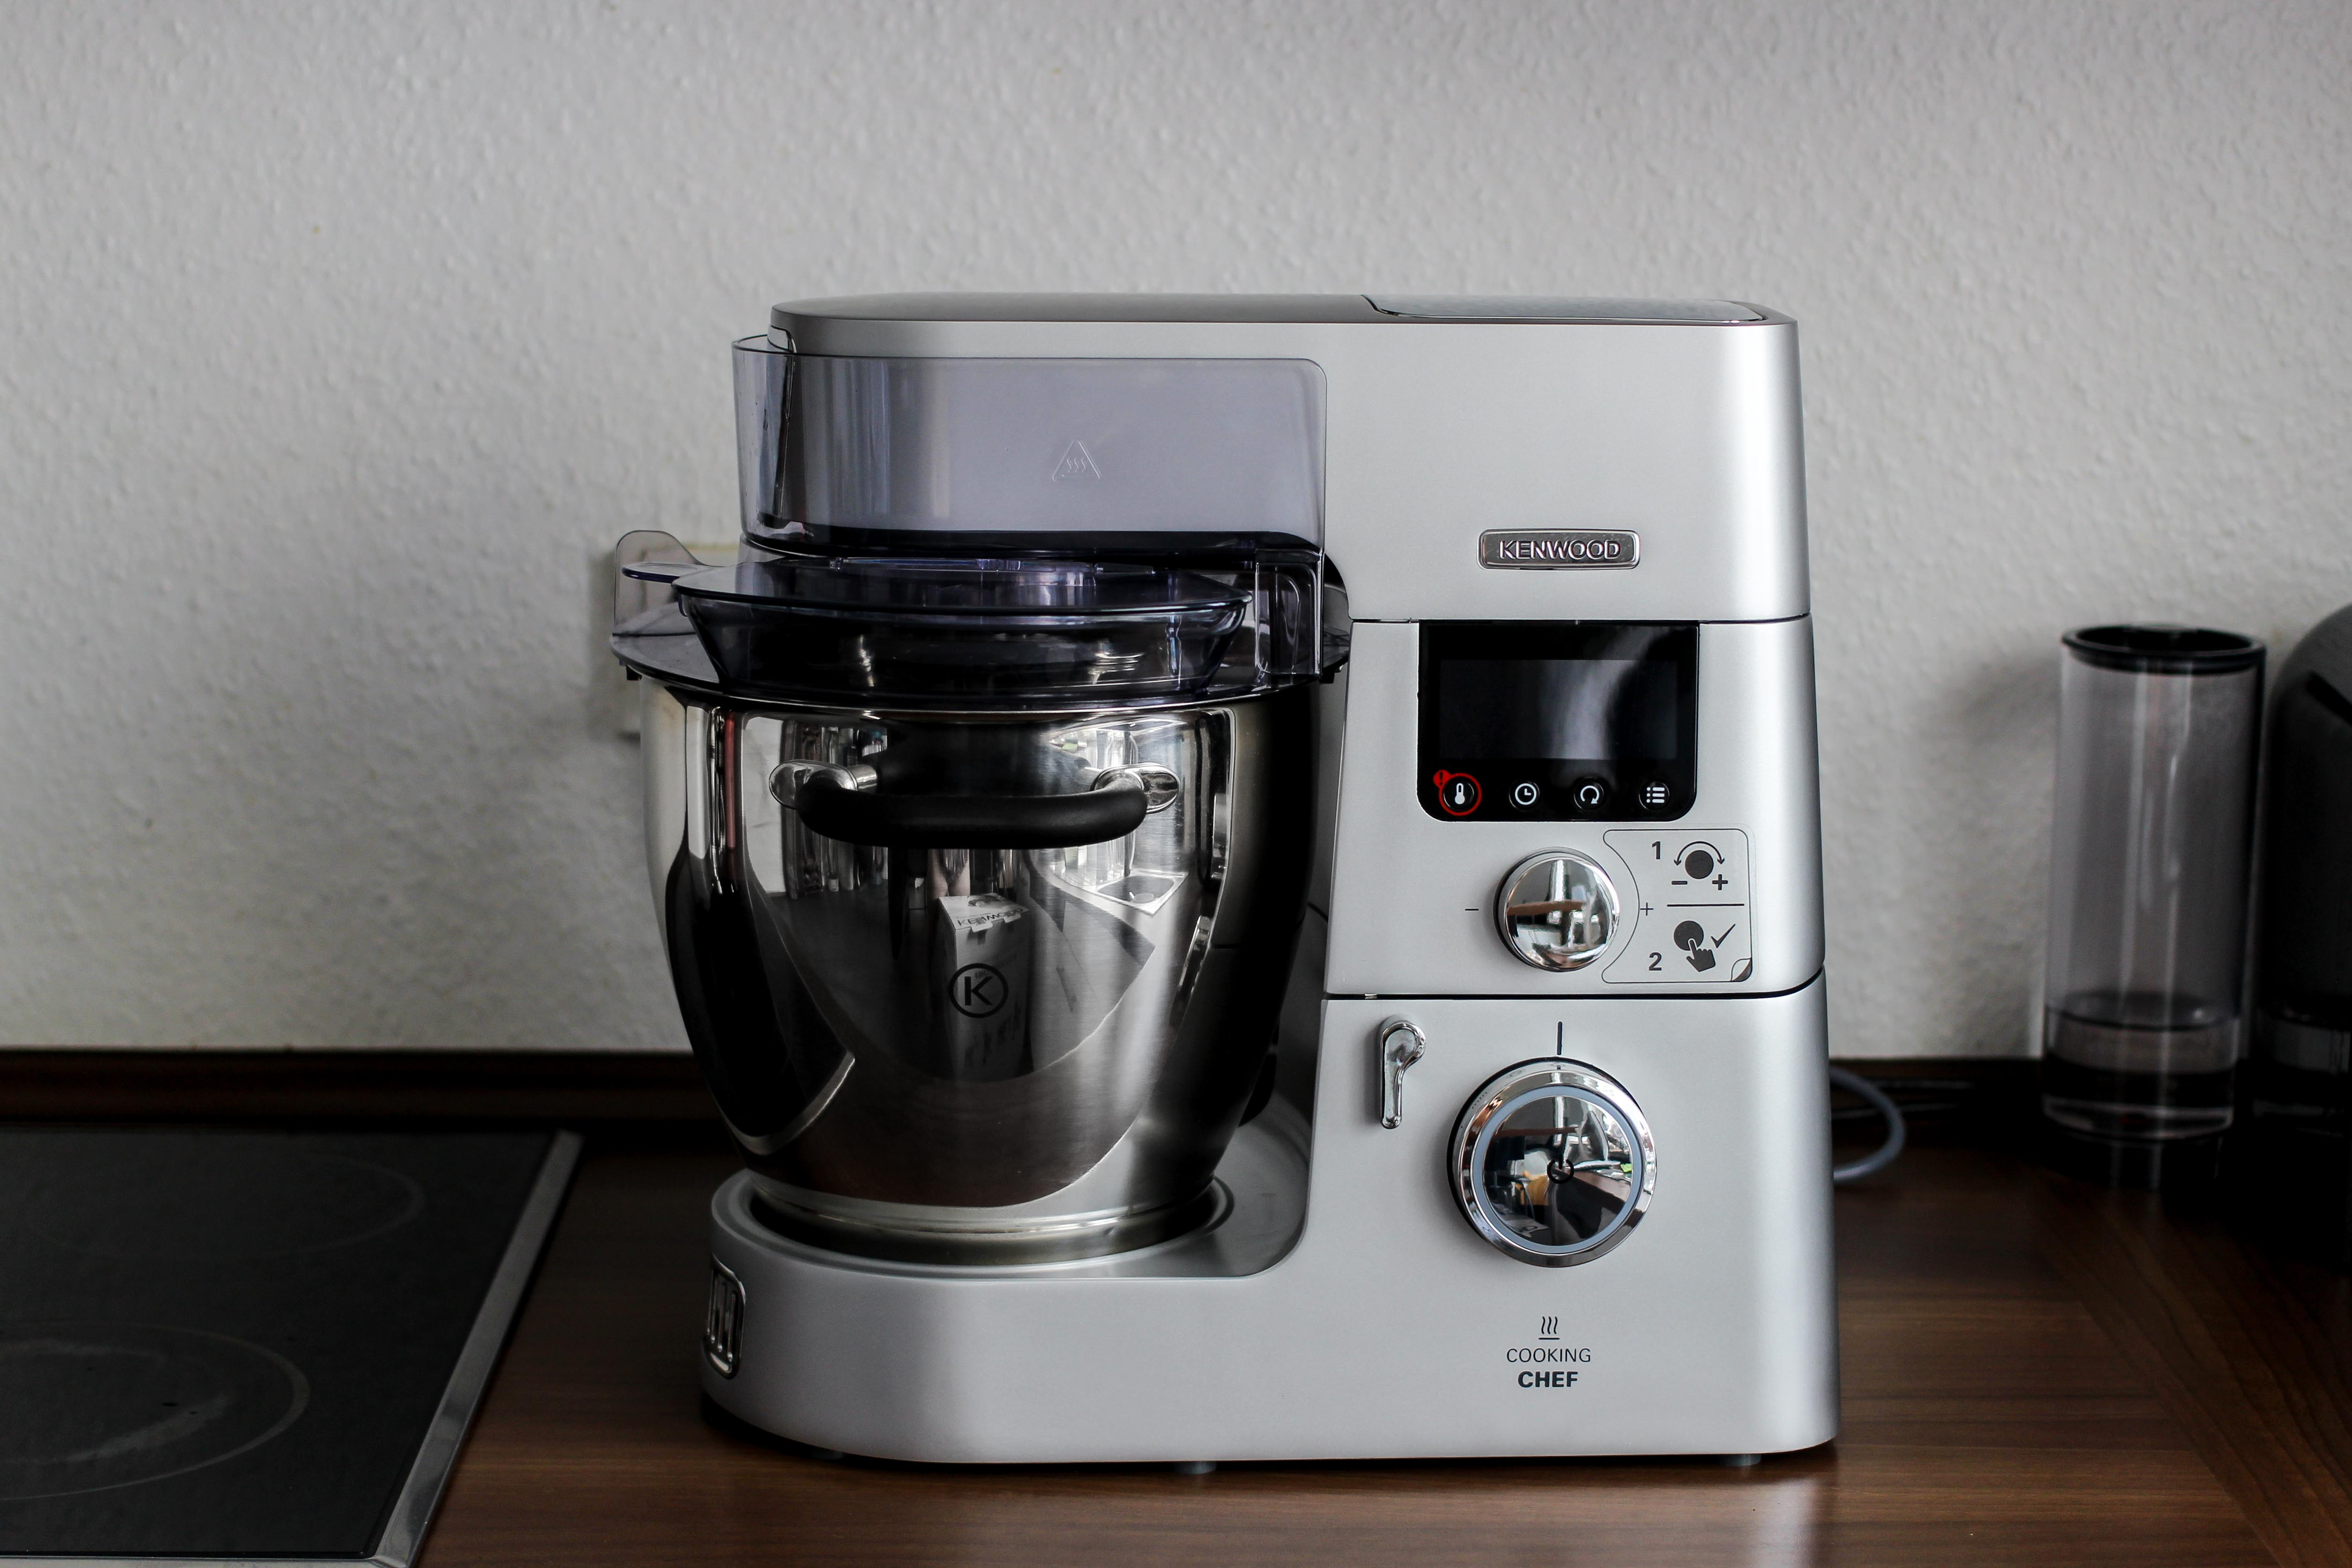 Küchenmaschine Kenwood Chef Amazon Kenwood Cooking Chef Gourmet Kcc9060s Küchenmaschine